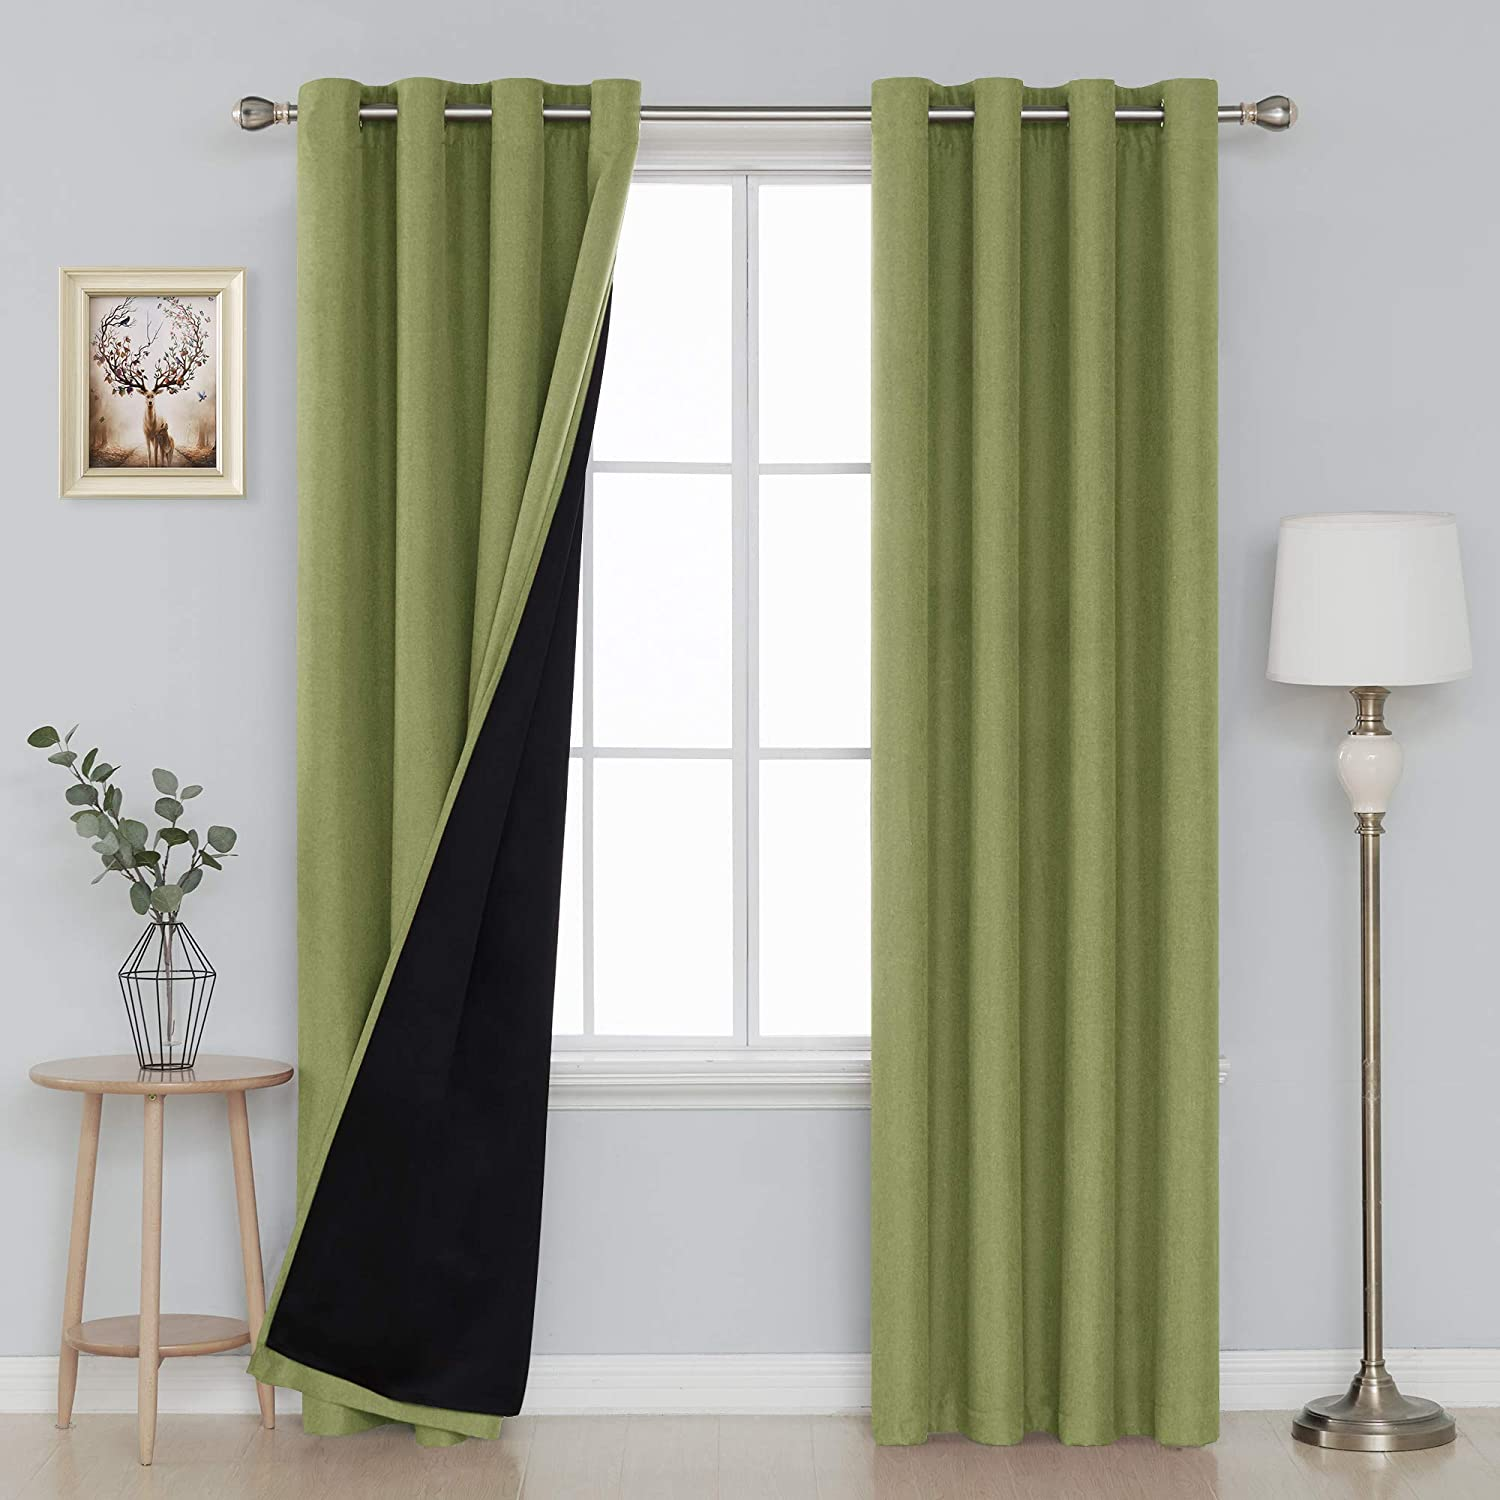 Deconovo Double Layer Blackout Curtains with Grommet Top Textured Linen Look Curtains for Dining Room 52x84 Inch Green, 2 Panels